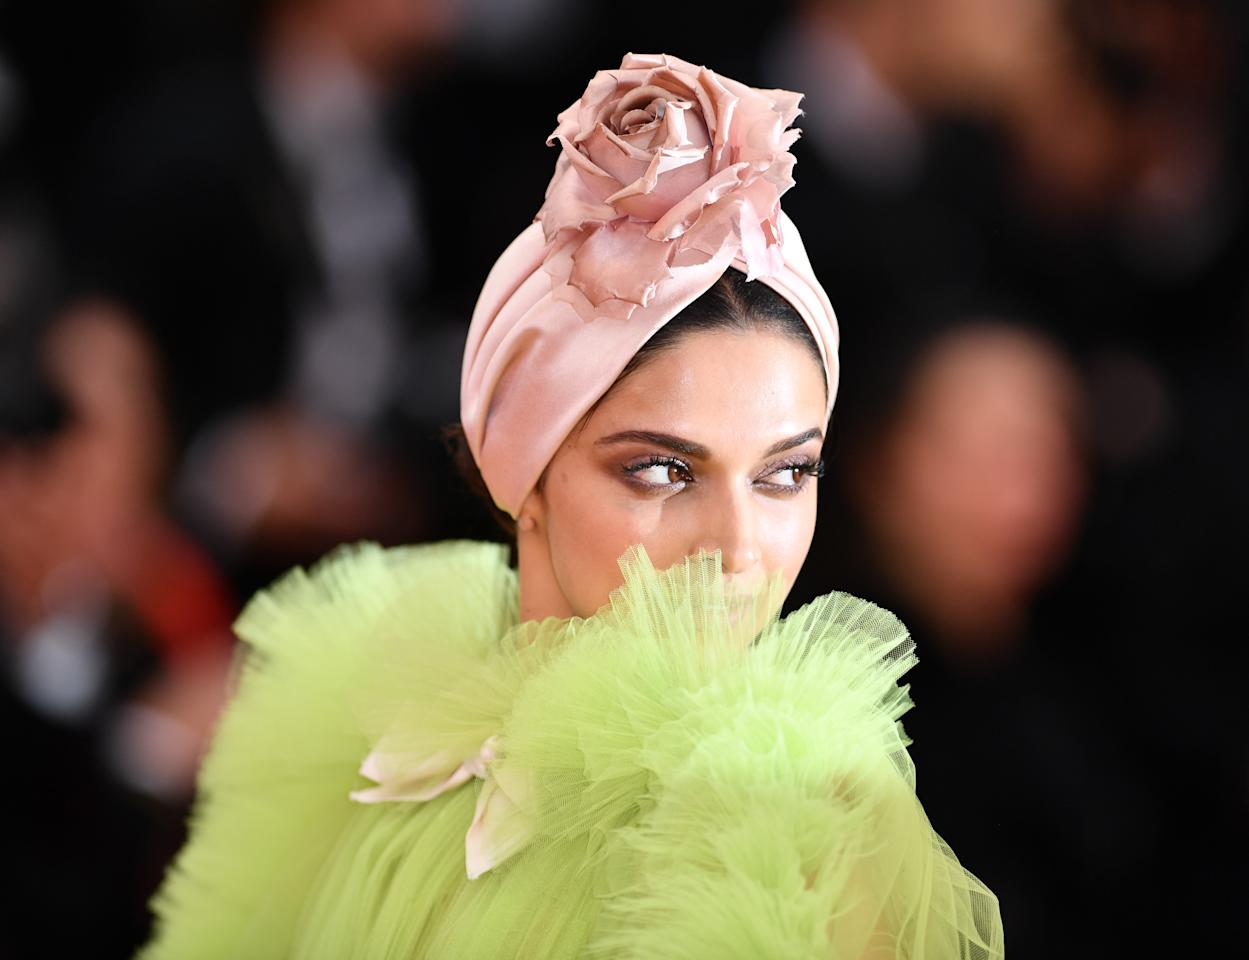 CANNES, FRANCE - MAY 17: Indian actress Deepika Padukone arrives for the screening of the film 'Dolor y Gloria' (Pain and Glory) in competition at the 72nd annual Cannes Film Festival in Cannes, France on May 17, 2019. (Photo by Mustafa Yalcin/Anadolu Agency/Getty Images)